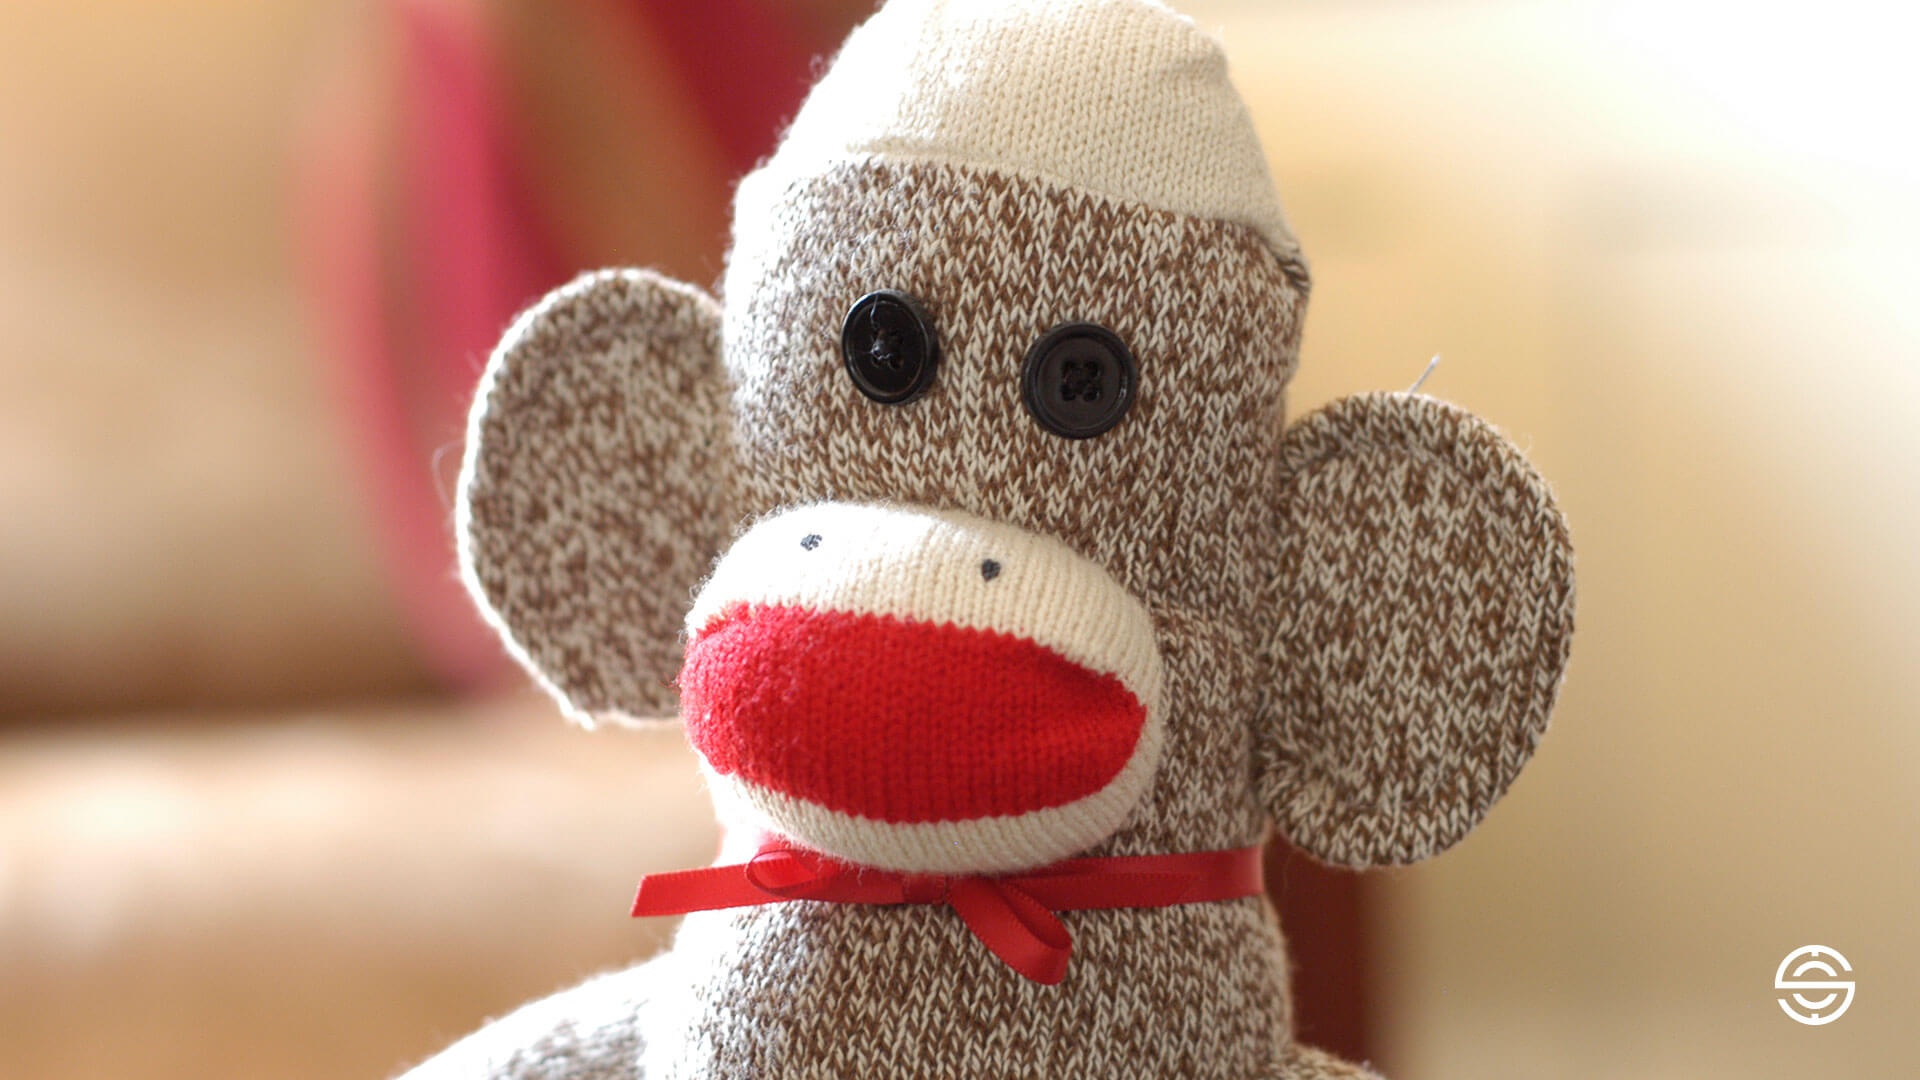 Physician Recruitment Sock Monkey